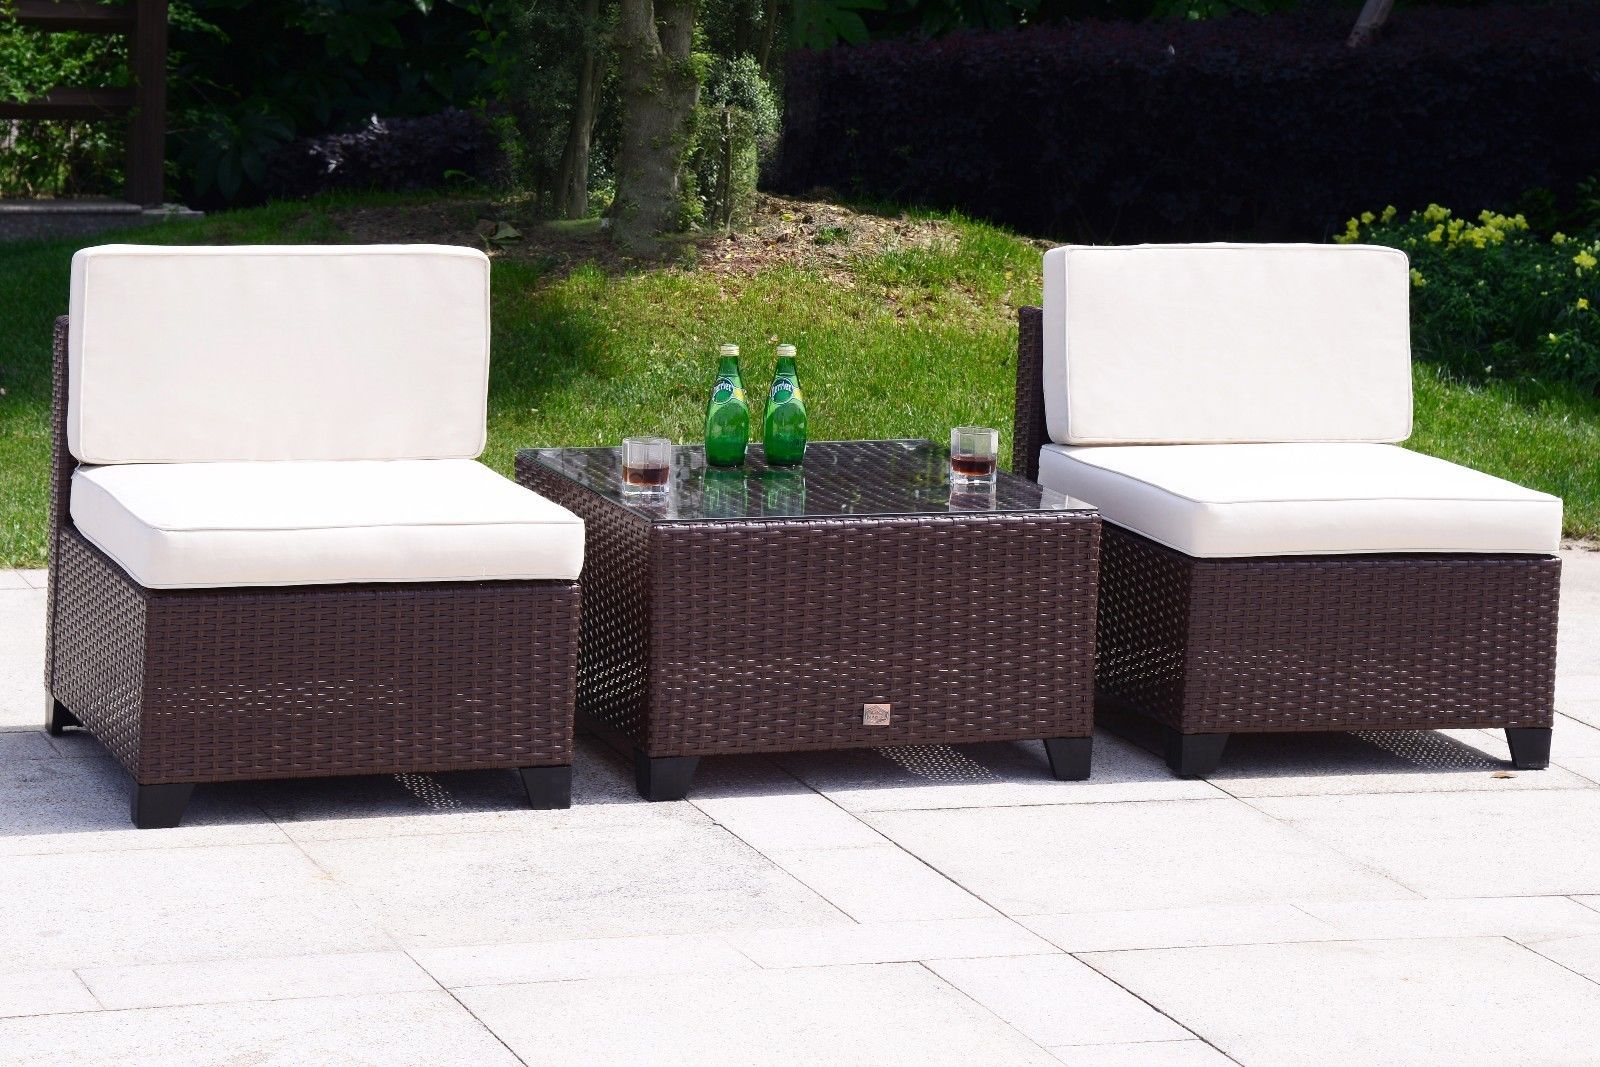 5 PC Rattan Wicker Sofa Set Cushioned Sectional Outdoor Garden Patio Furniture